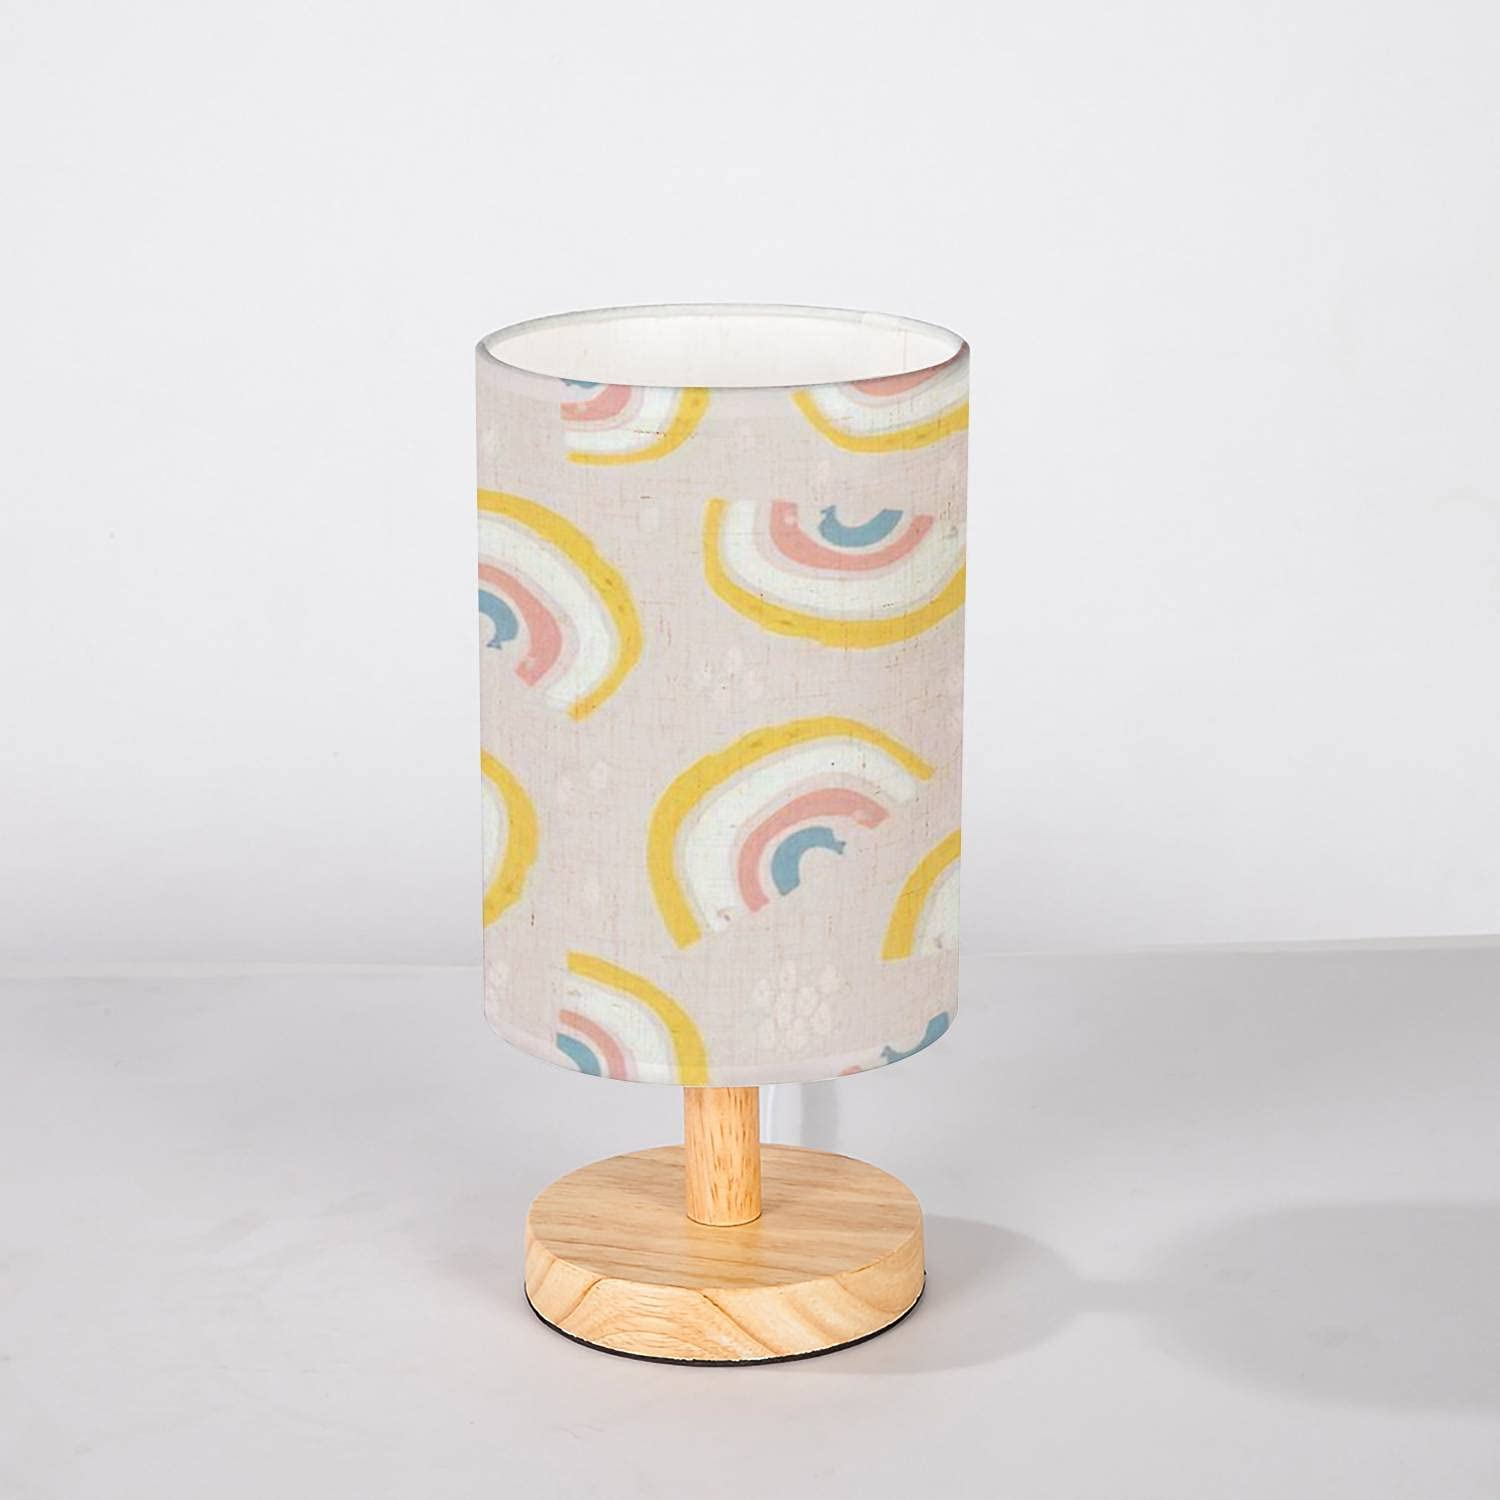 Minimalist Bedside Table Lamp Bombing free shipping Seamless Childish with Super popular specialty store Han Pattern